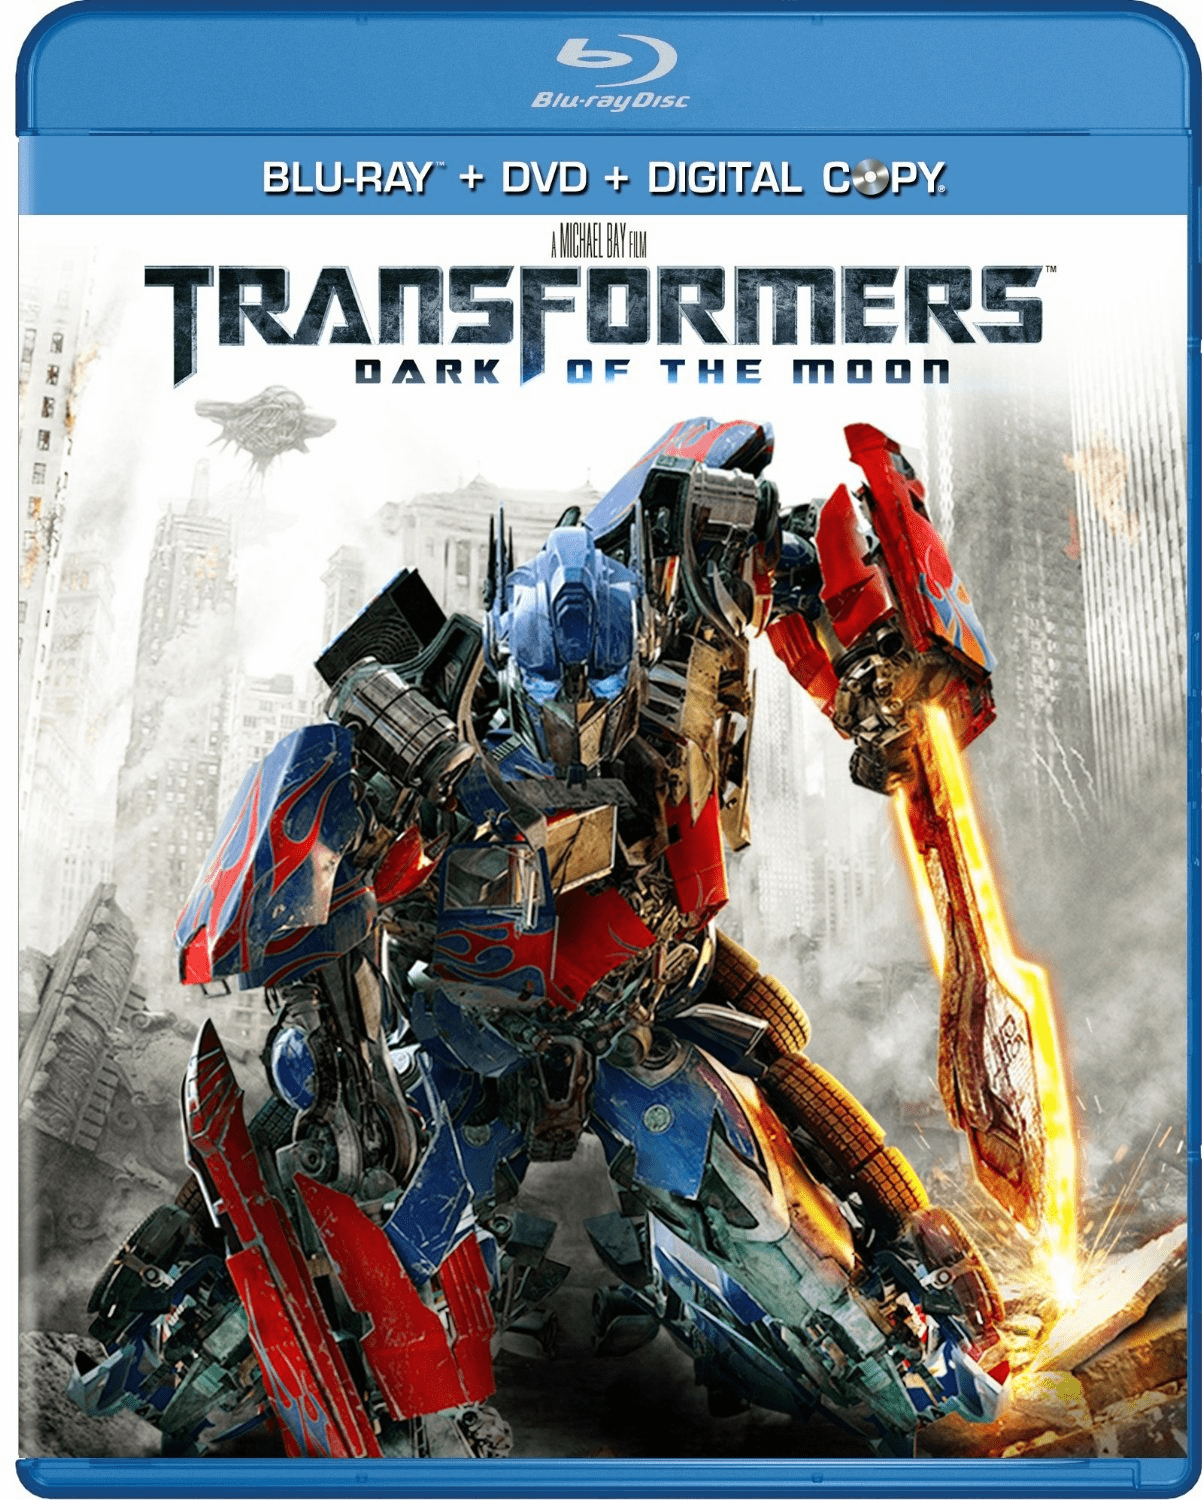 Transformers Dark Of The Moon (Two-Disc Blu-ray/DVD Combo)